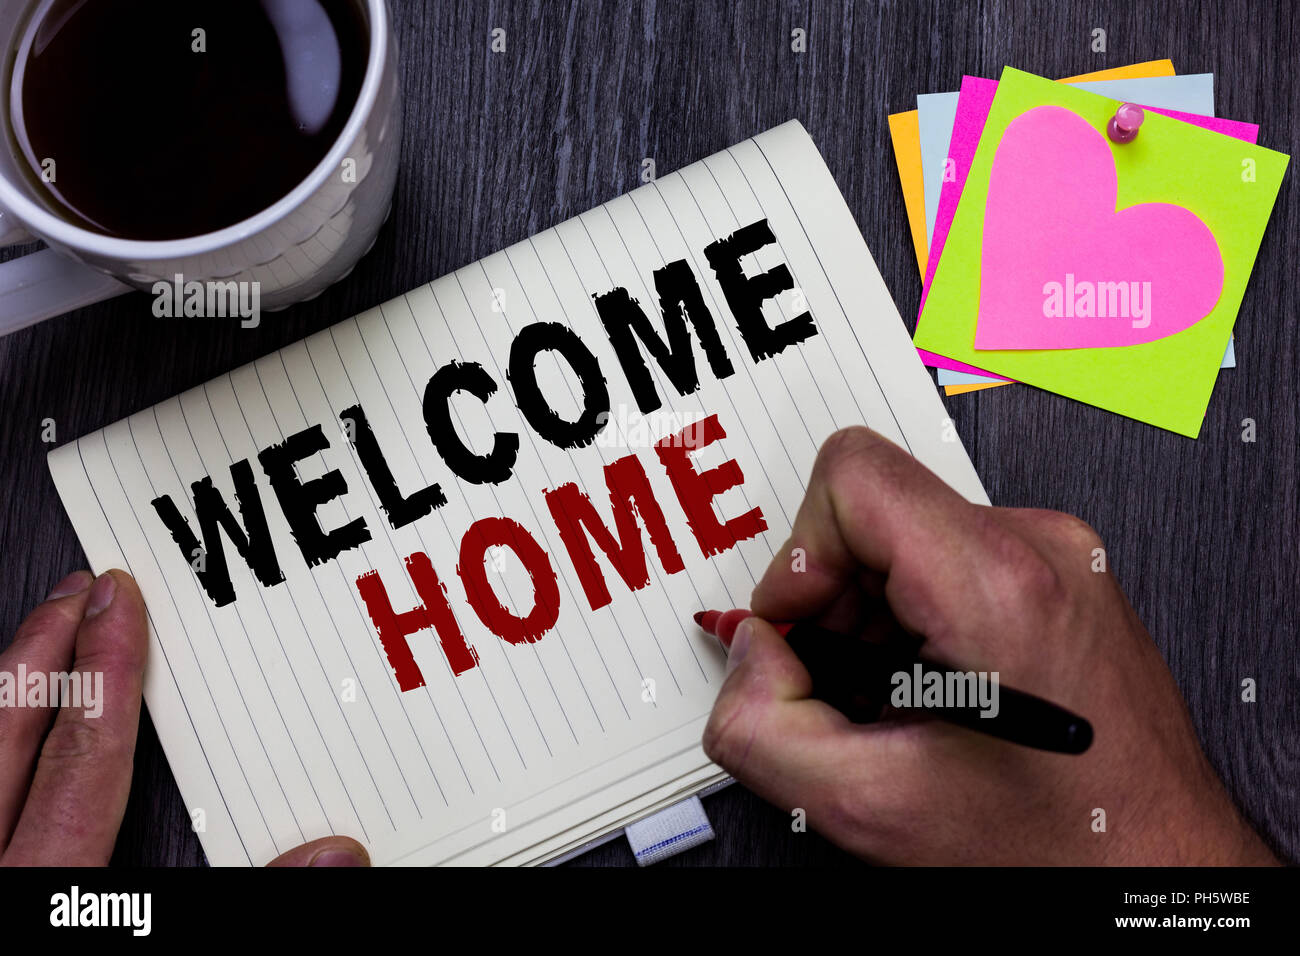 Conceptual hand writing showing Welcome Home. Business photo text